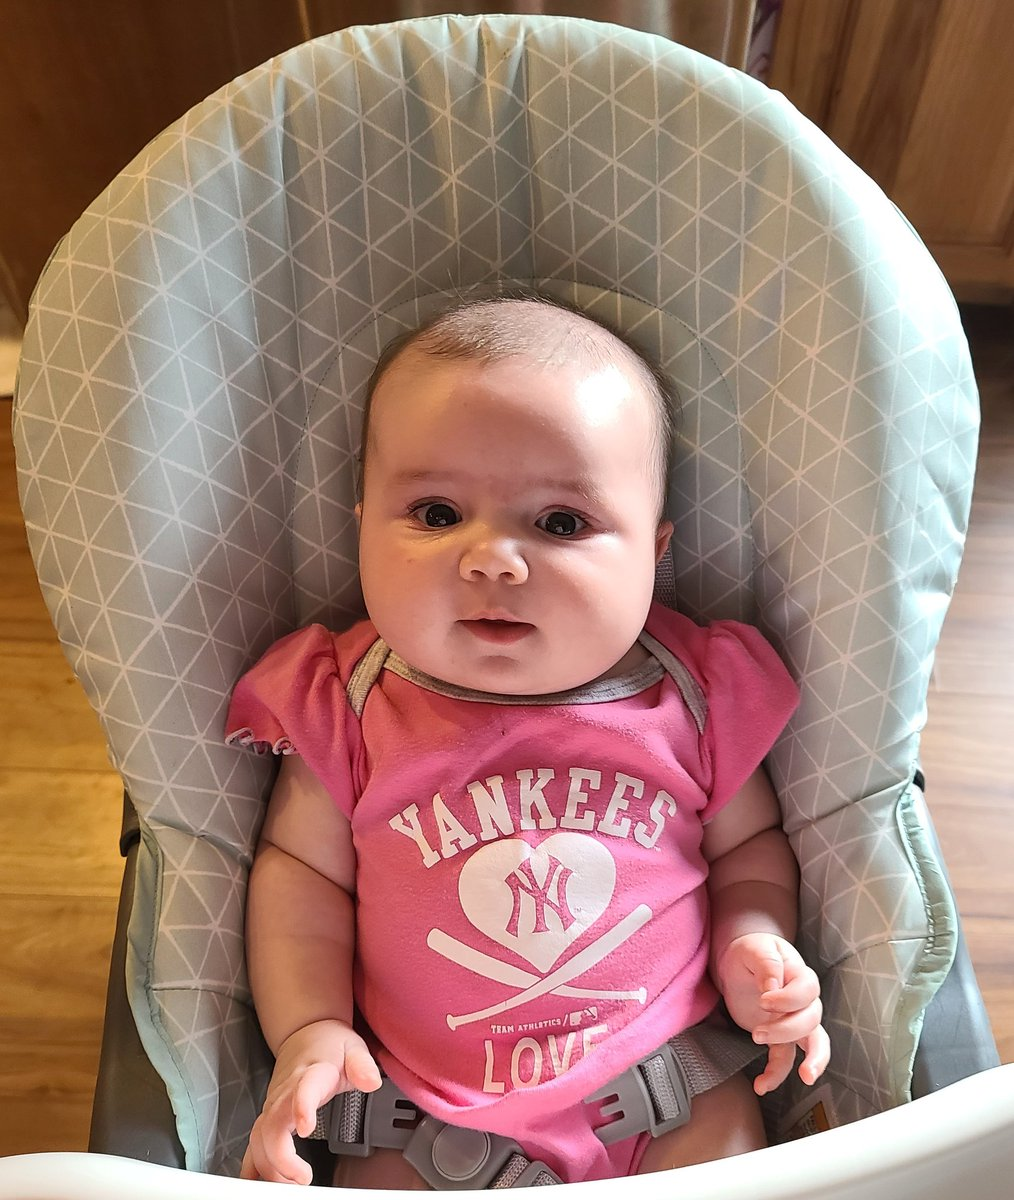 My daughter's name is Michael Jordan. Therfore she is the  baby. Beat that chumps. #GirlDad pic.twitter.com/2BW0gEqlGm  by The Hitter